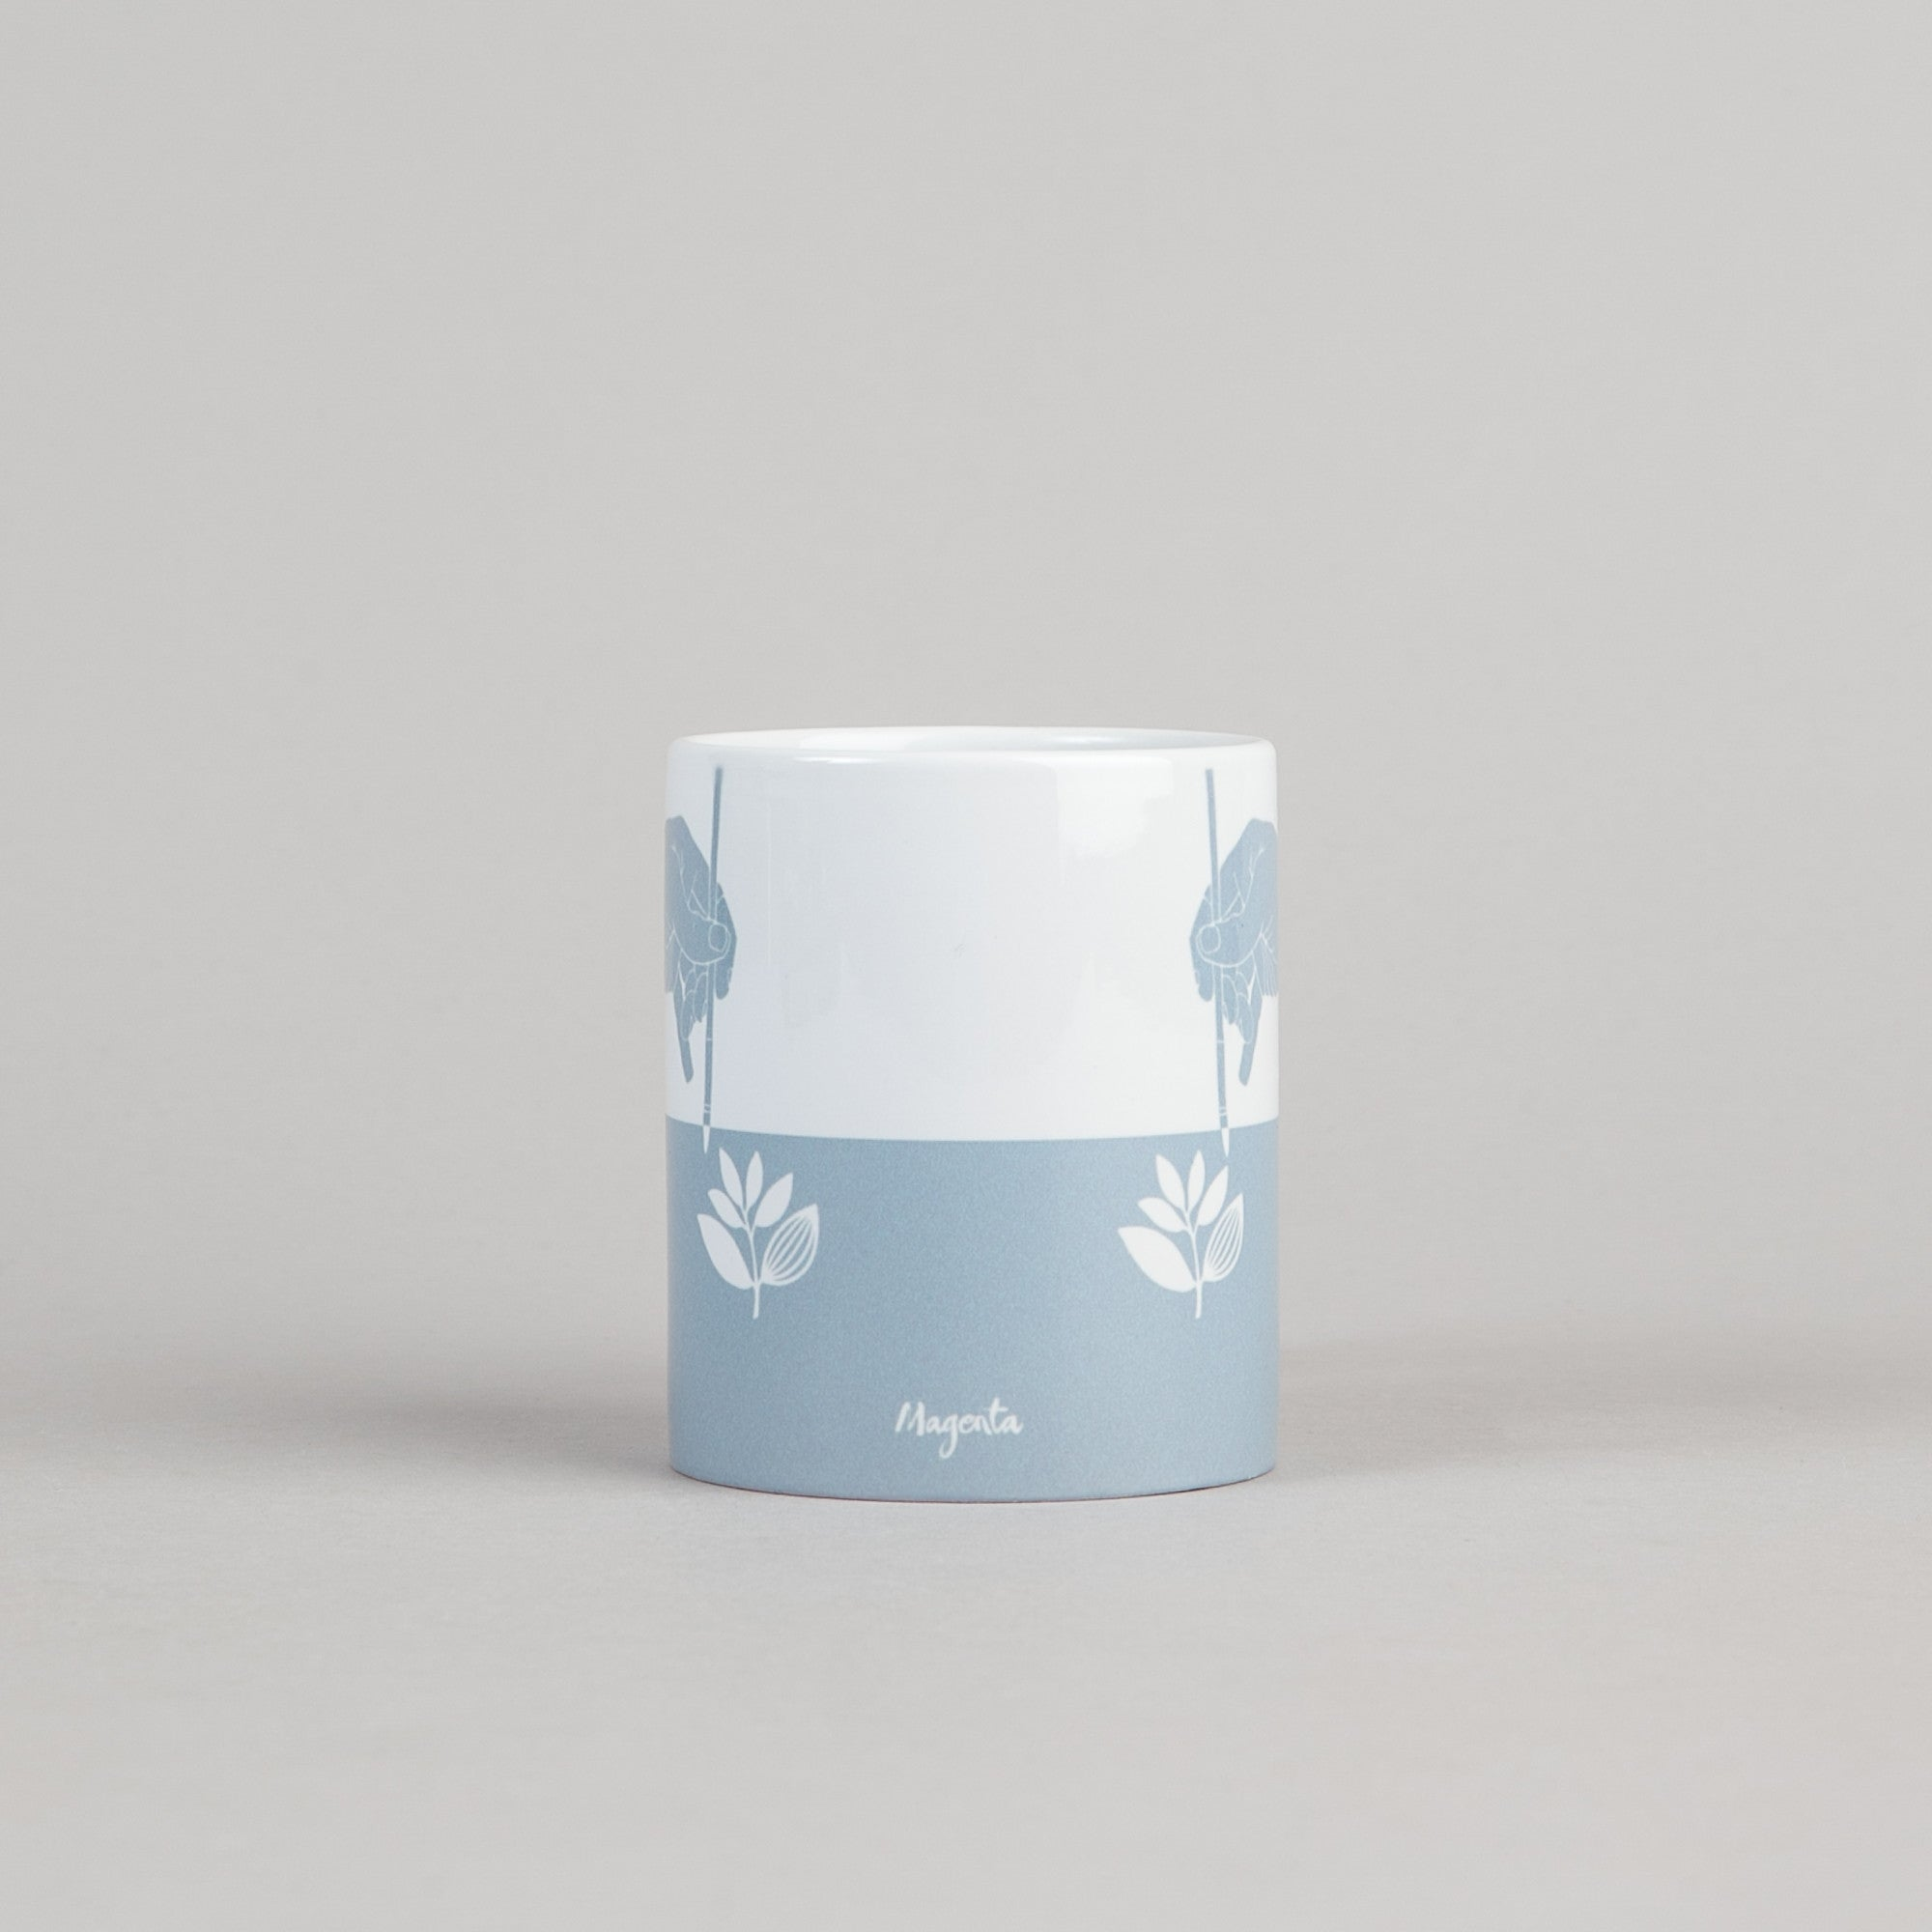 Magenta Bush Mug - Blue / White